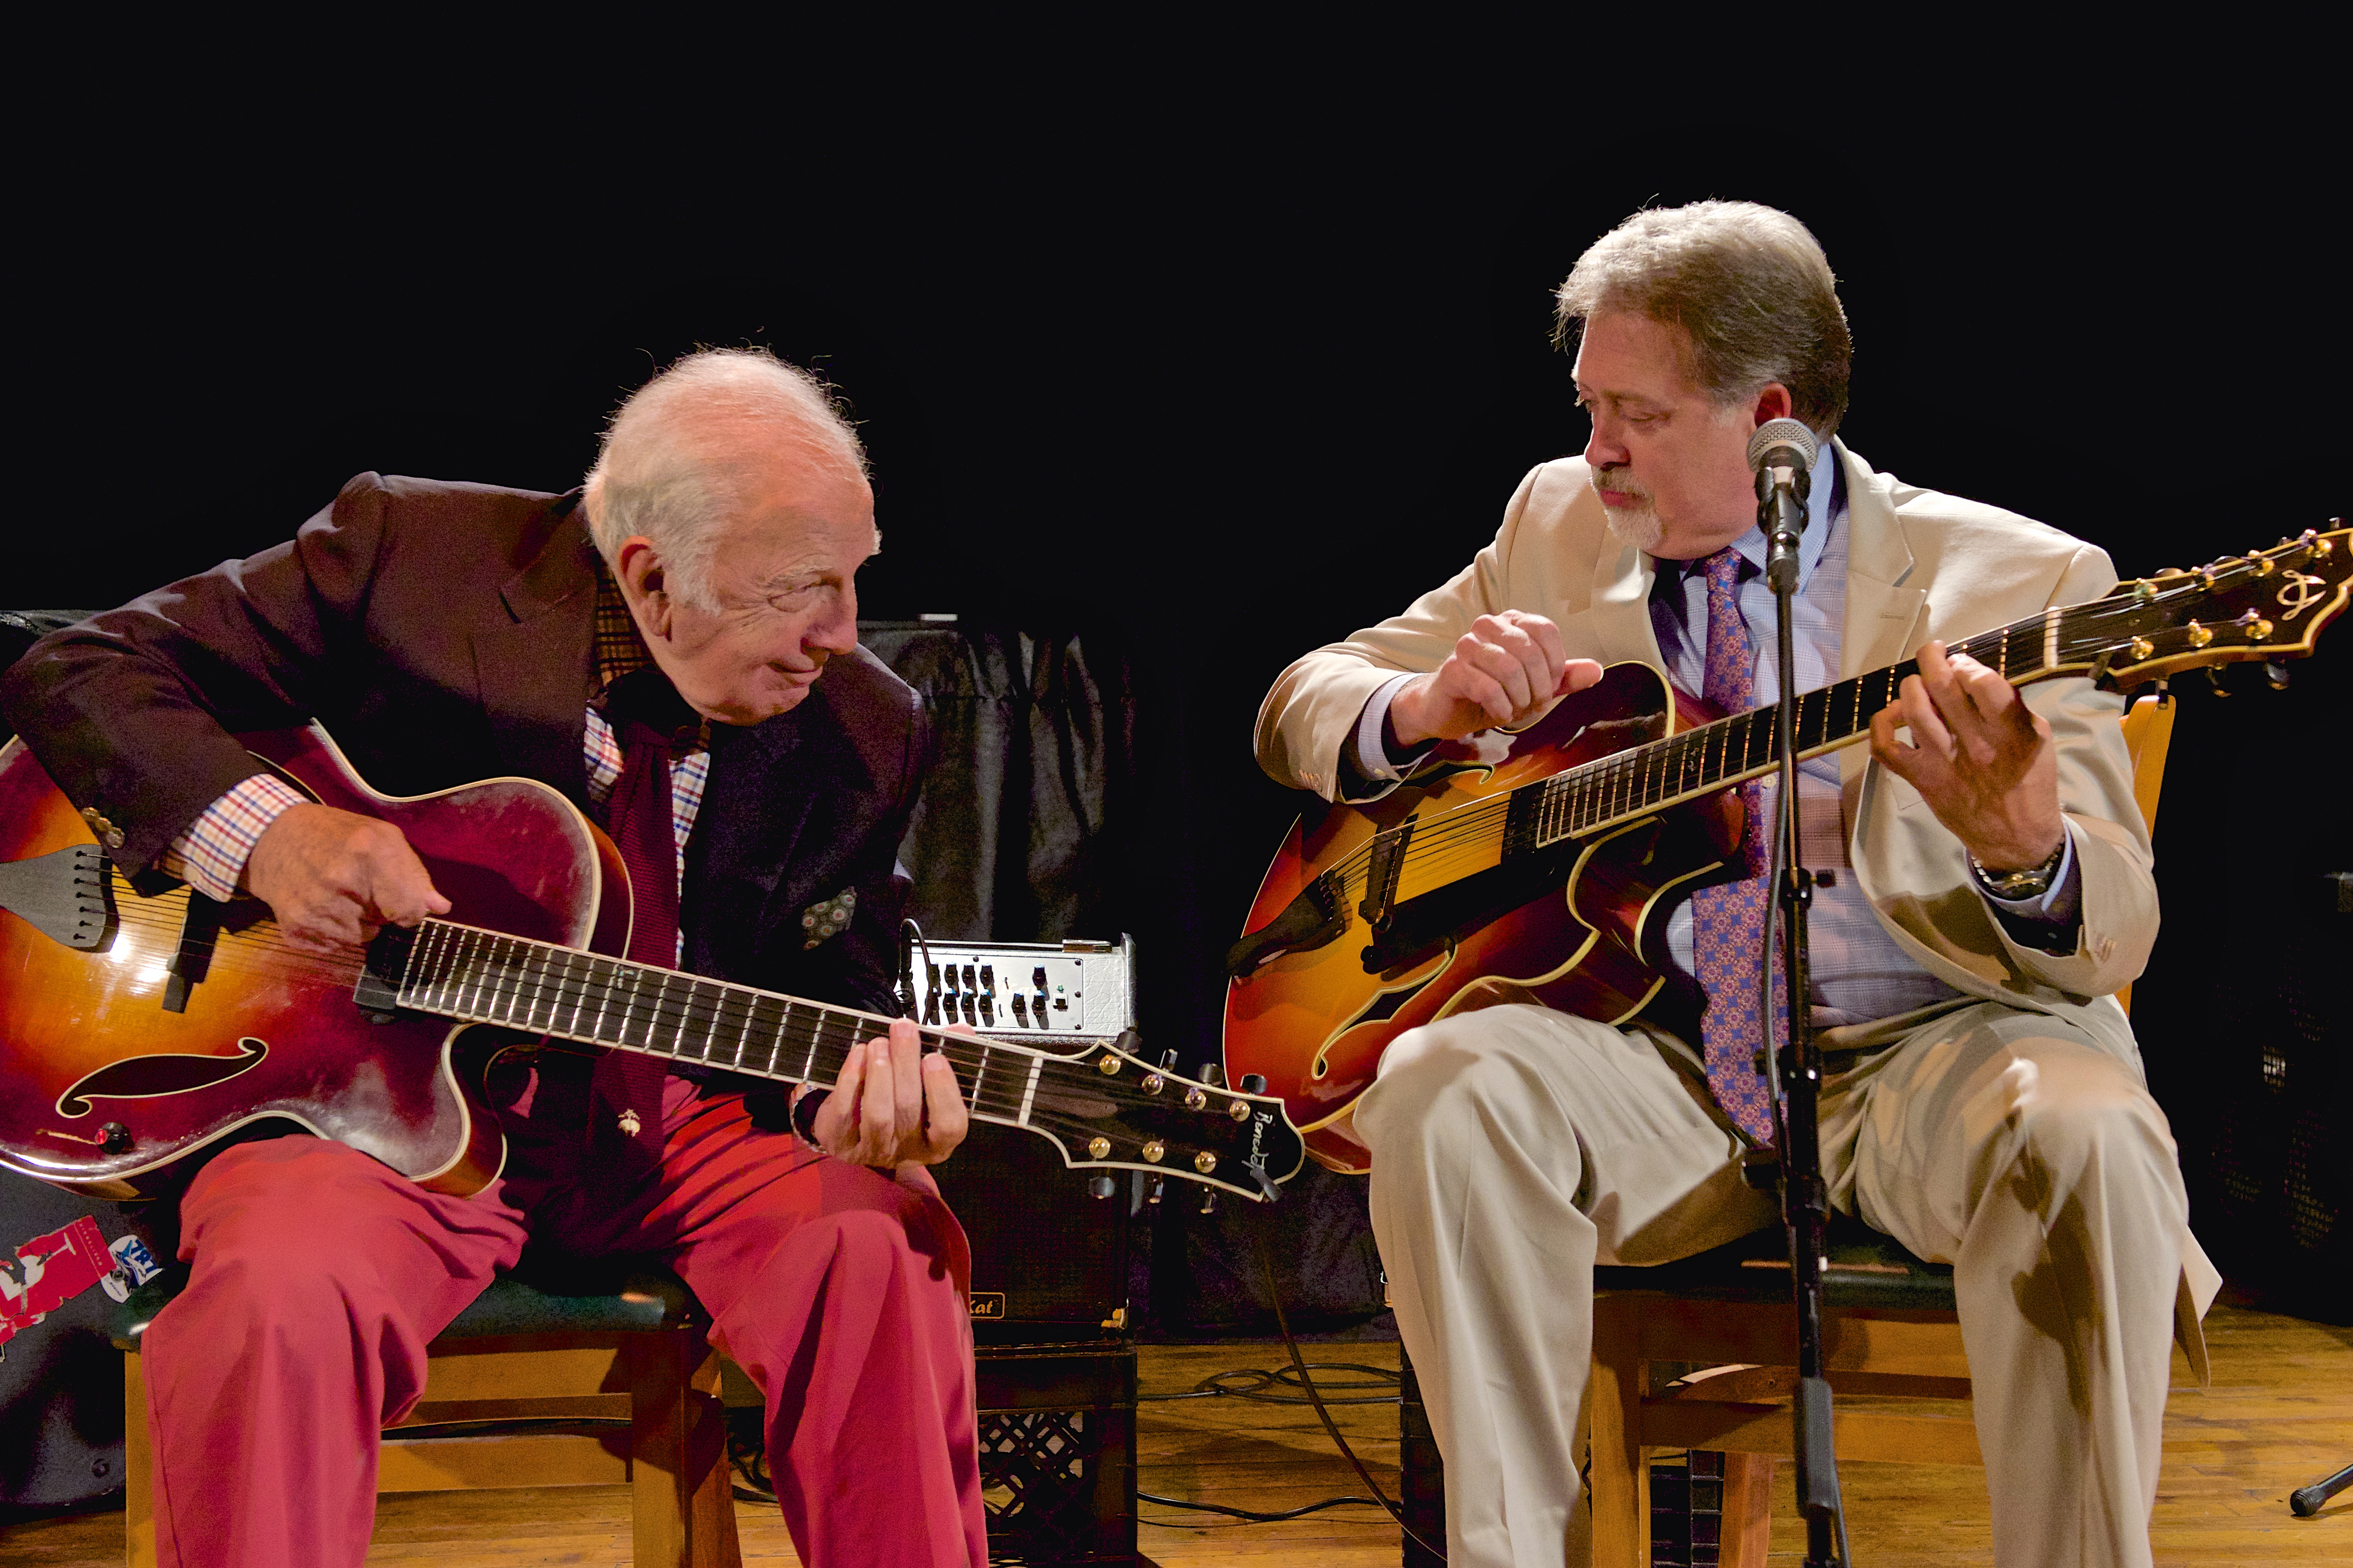 Jazz guitarist Bucky Pizzarelli, 89, at left, with Ed Laub, 62.